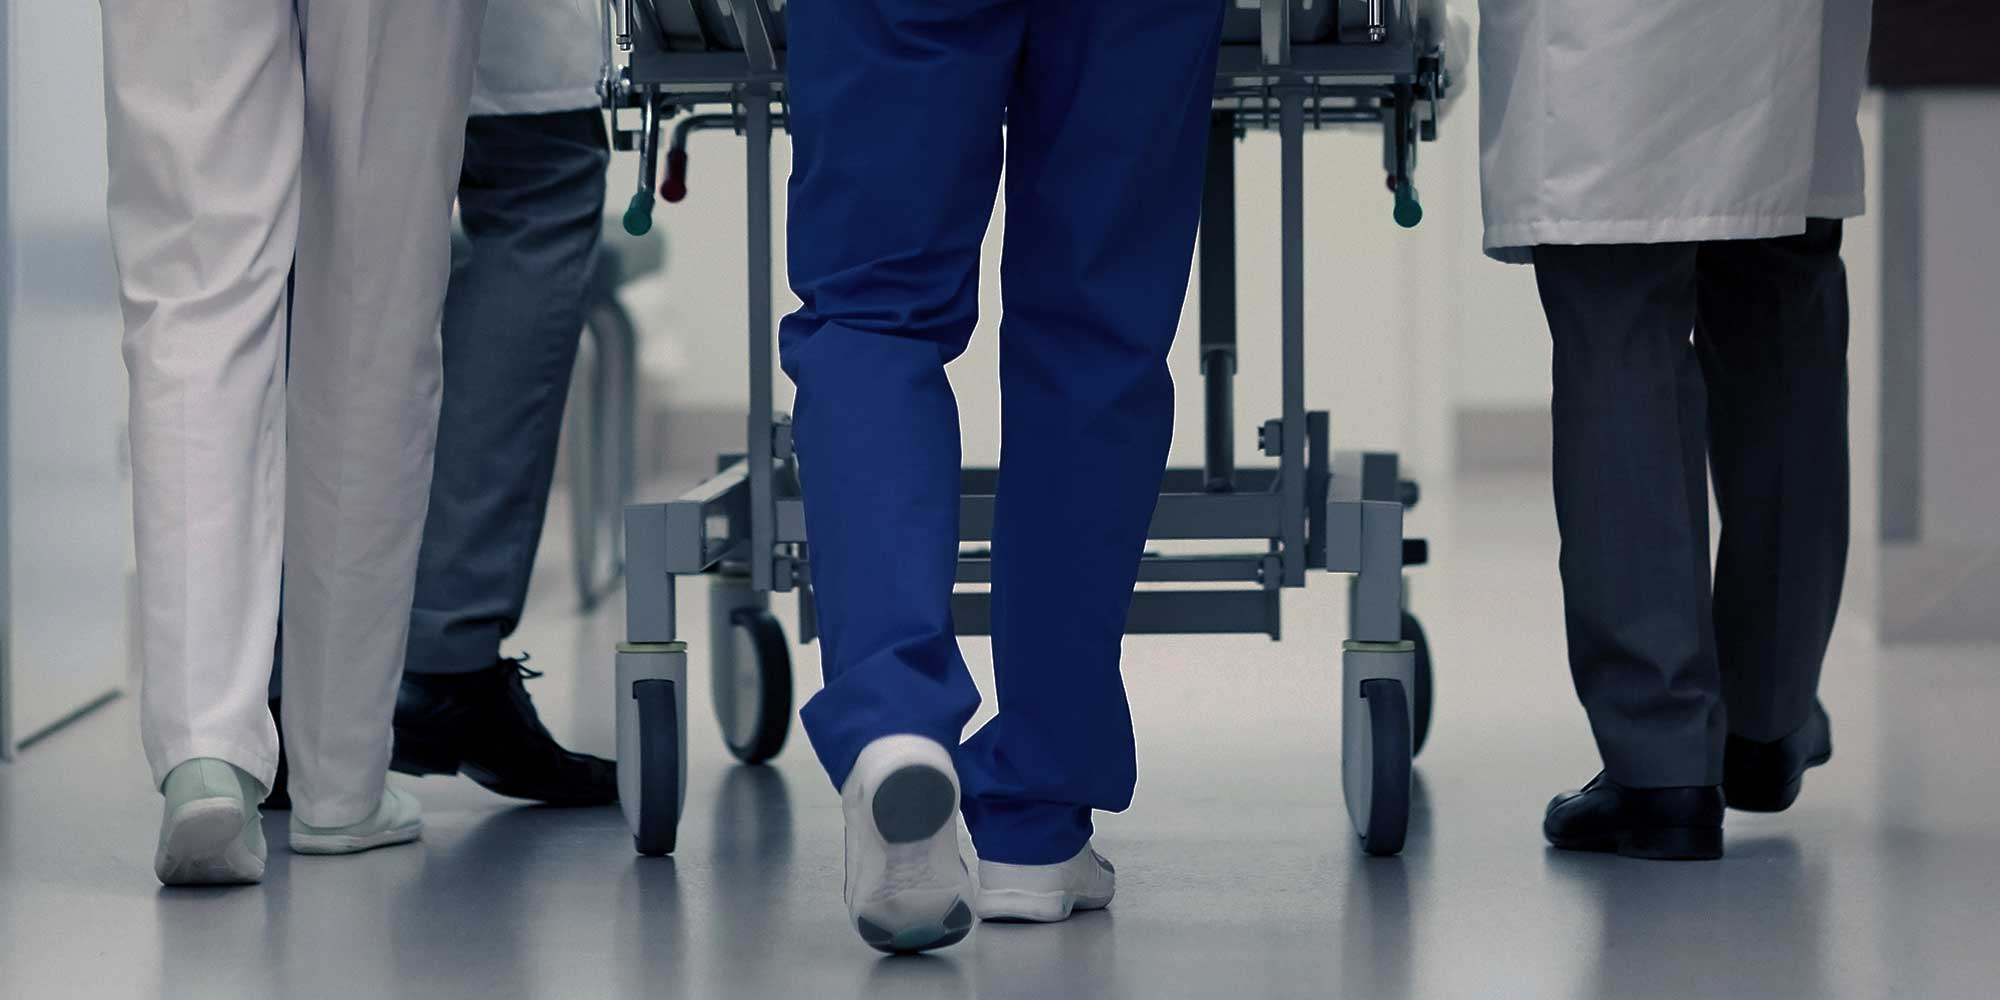 doctors and nurses pushing patient on a hospital trolly